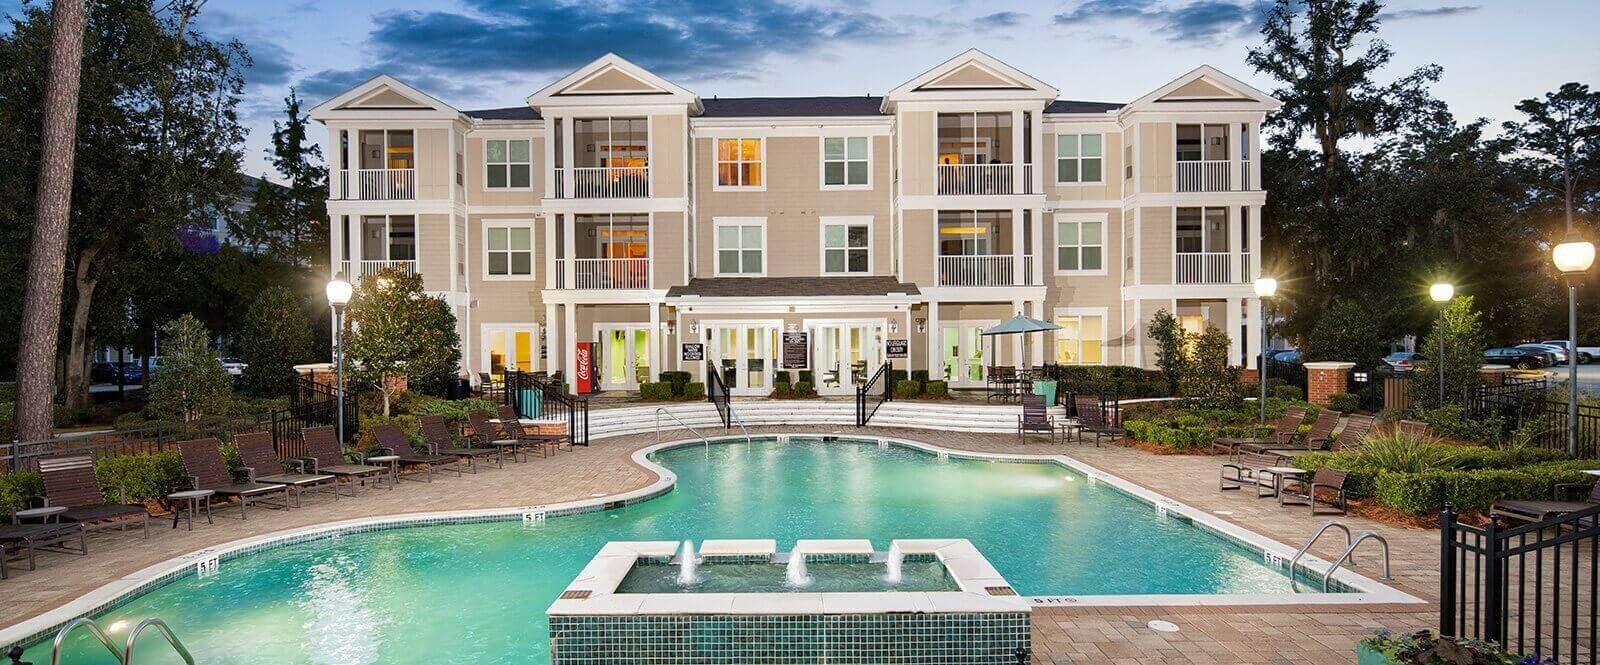 Swimming Pool with Sunning Deck at Abberly at West Ashley Apartment Homes, Charleston, 29414